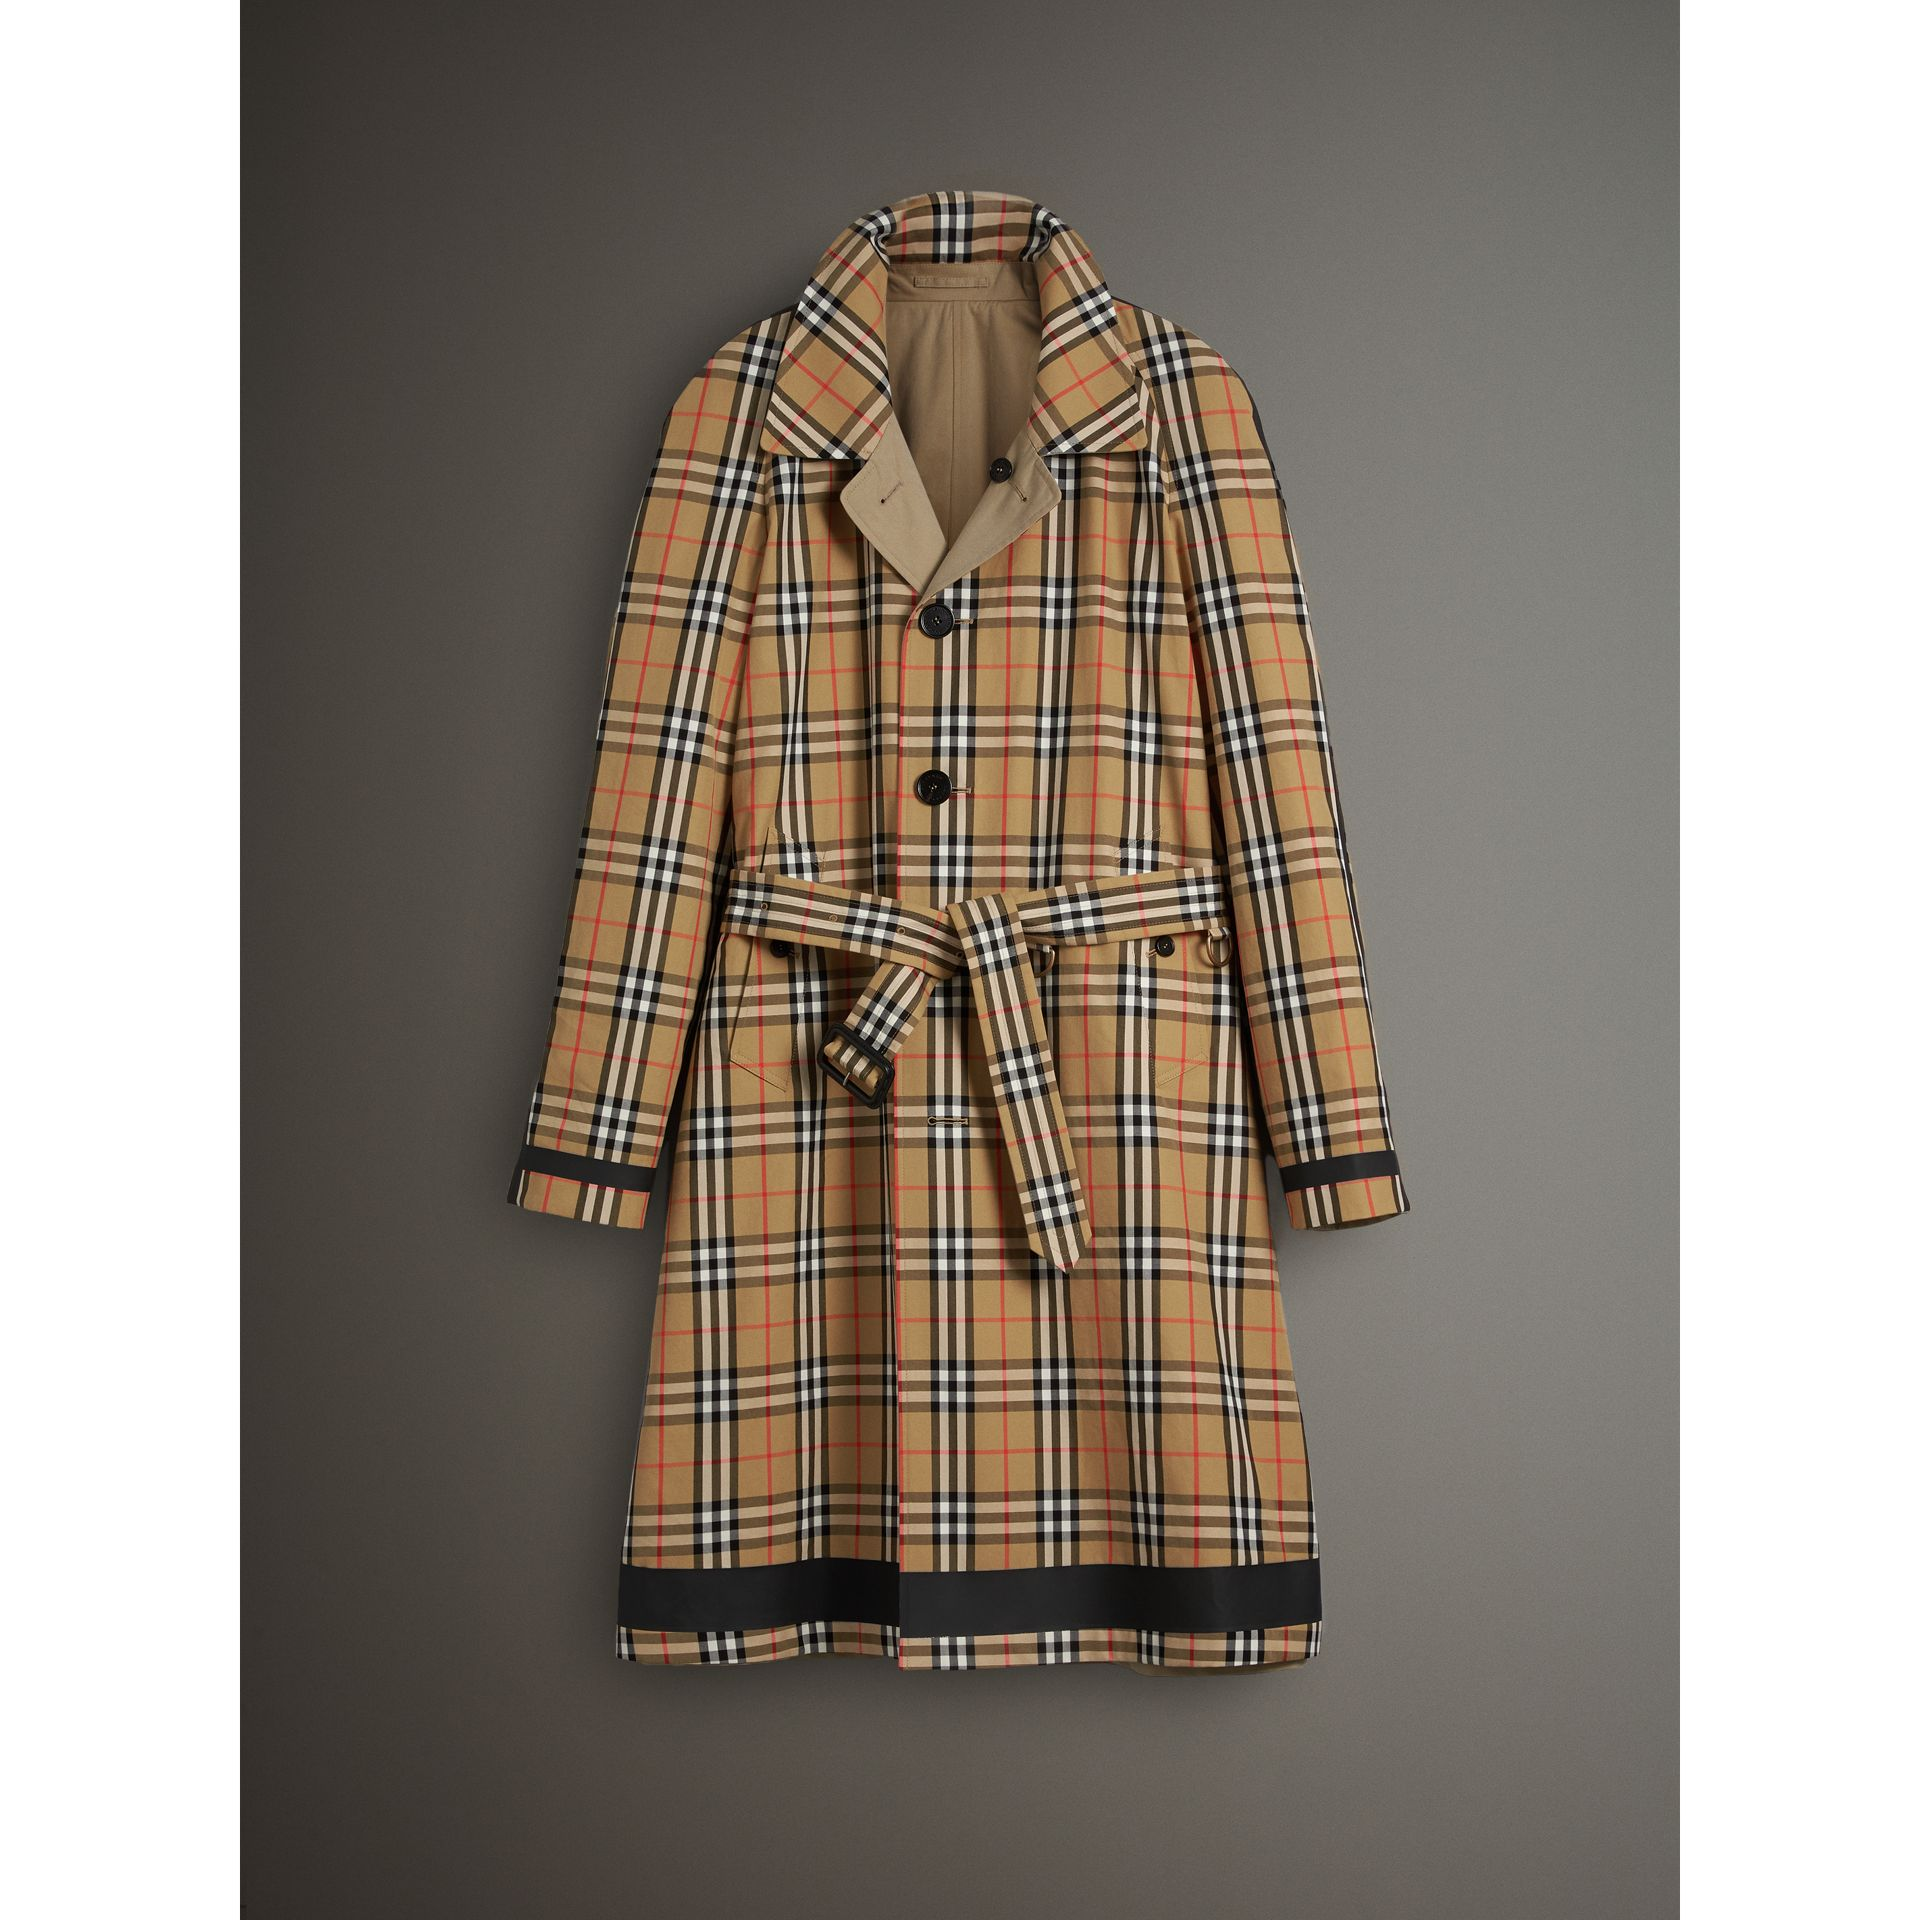 Details about Mens Reversible BURBERRY Trench Coat